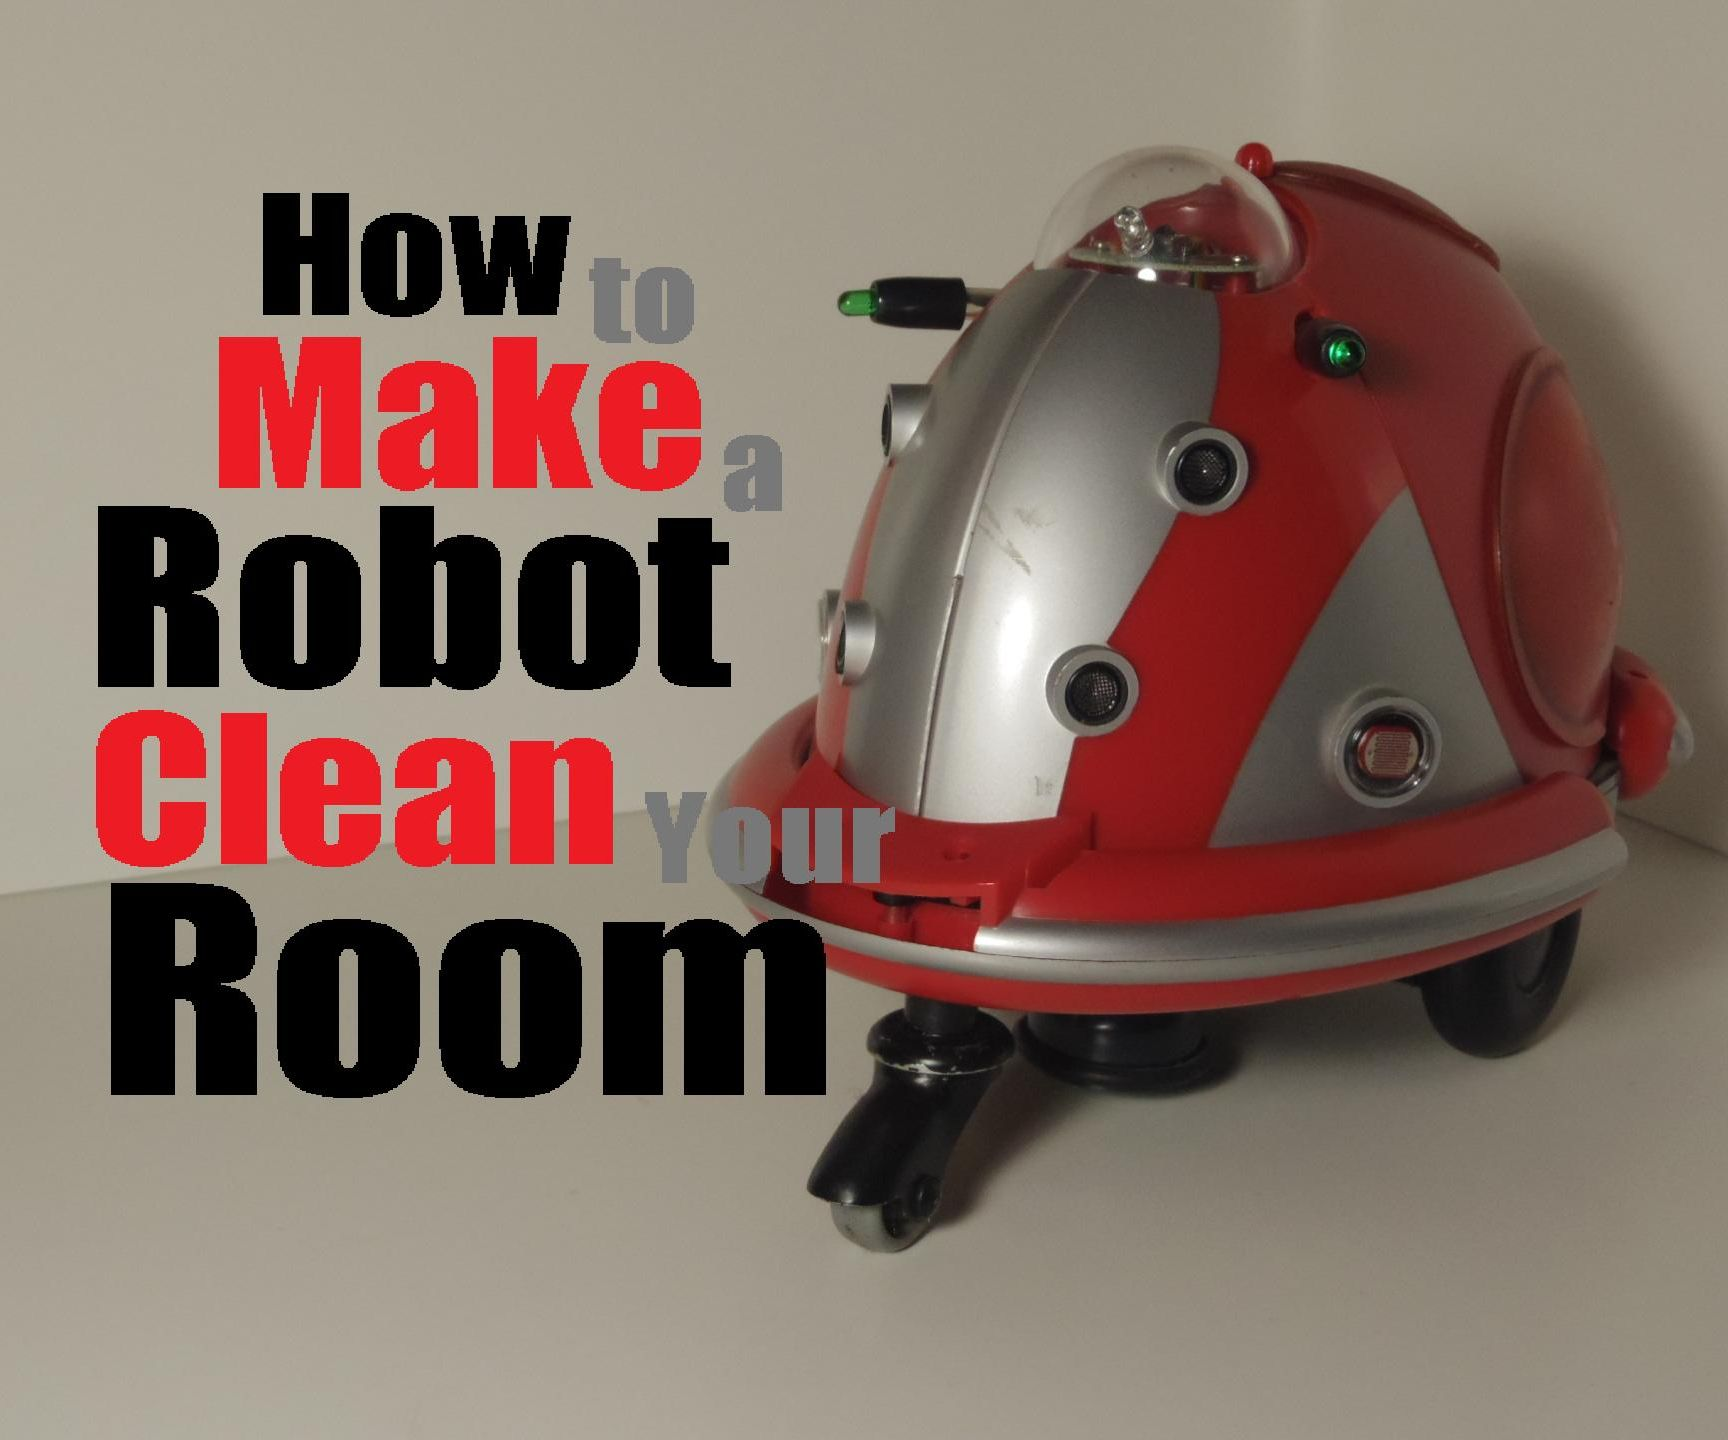 How to make a robot clean your room